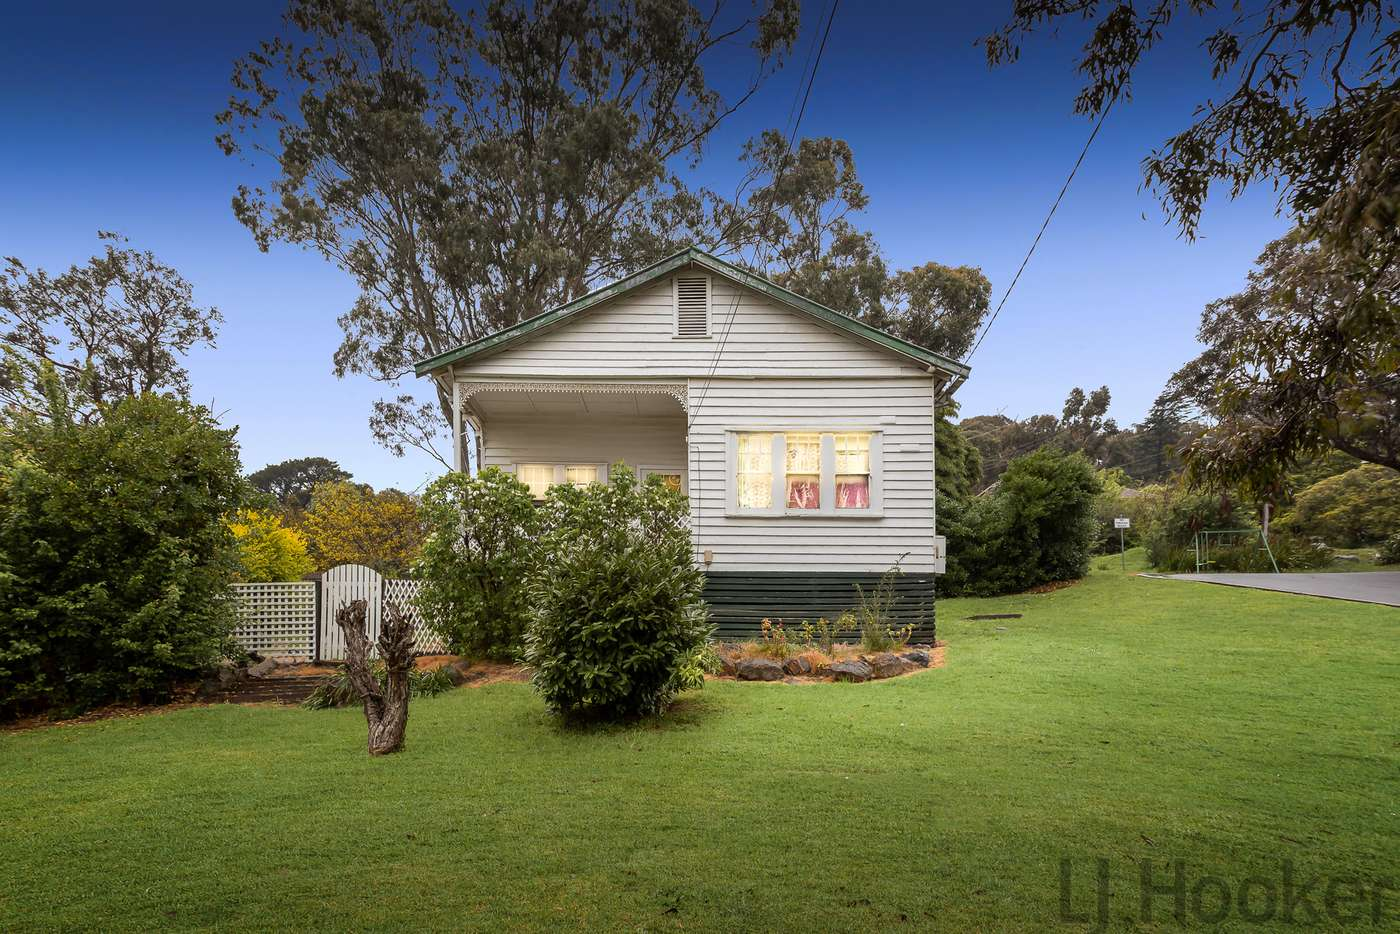 Main view of Homely house listing, 15 Schneider Street, Ferntree Gully VIC 3156